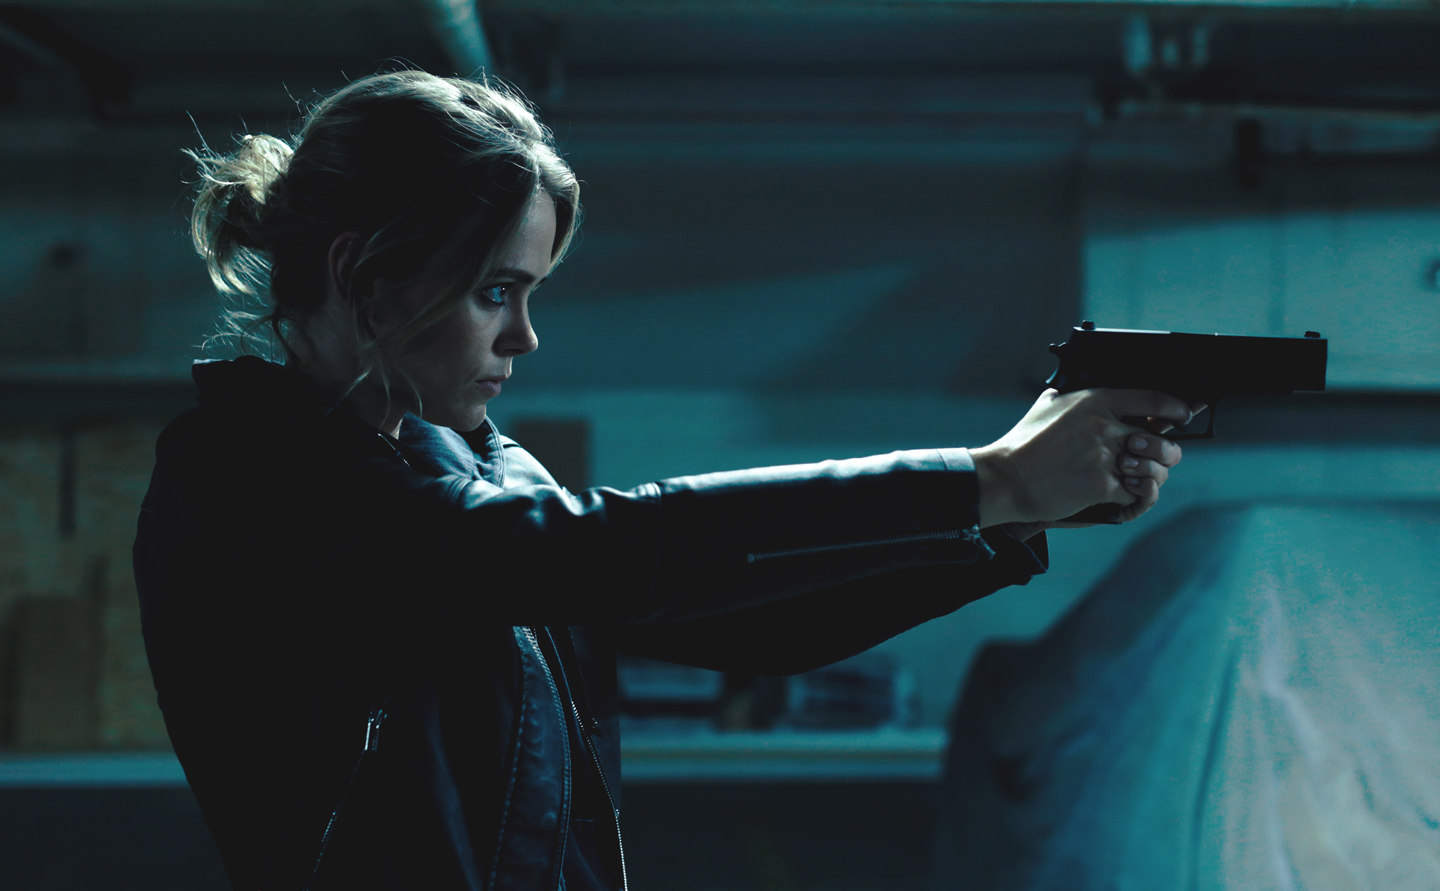 "Katia Winter as Natalie in  Negative . Copyright        0   0   1   2   Meydenbauer Entertainment   1   1   2   14.0                       Normal   0           false   false   false     EN-US   JA   X-NONE                                                                                                                                                                                                                                                                                                                                                                               /* Style Definitions */ table.MsoNormalTable 	{mso-style-name:""Table Normal""; 	mso-tstyle-rowband-size:0; 	mso-tstyle-colband-size:0; 	mso-style-noshow:yes; 	mso-style-priority:99; 	mso-style-parent:""""; 	mso-padding-alt:0in 5.4pt 0in 5.4pt; 	mso-para-margin:0in; 	mso-para-margin-bottom:.0001pt; 	mso-pagination:widow-orphan; 	font-size:12.0pt; 	font-family:Arial; 	mso-fareast-language:JA;}      © 2016 Meydenbauer Entertainment"